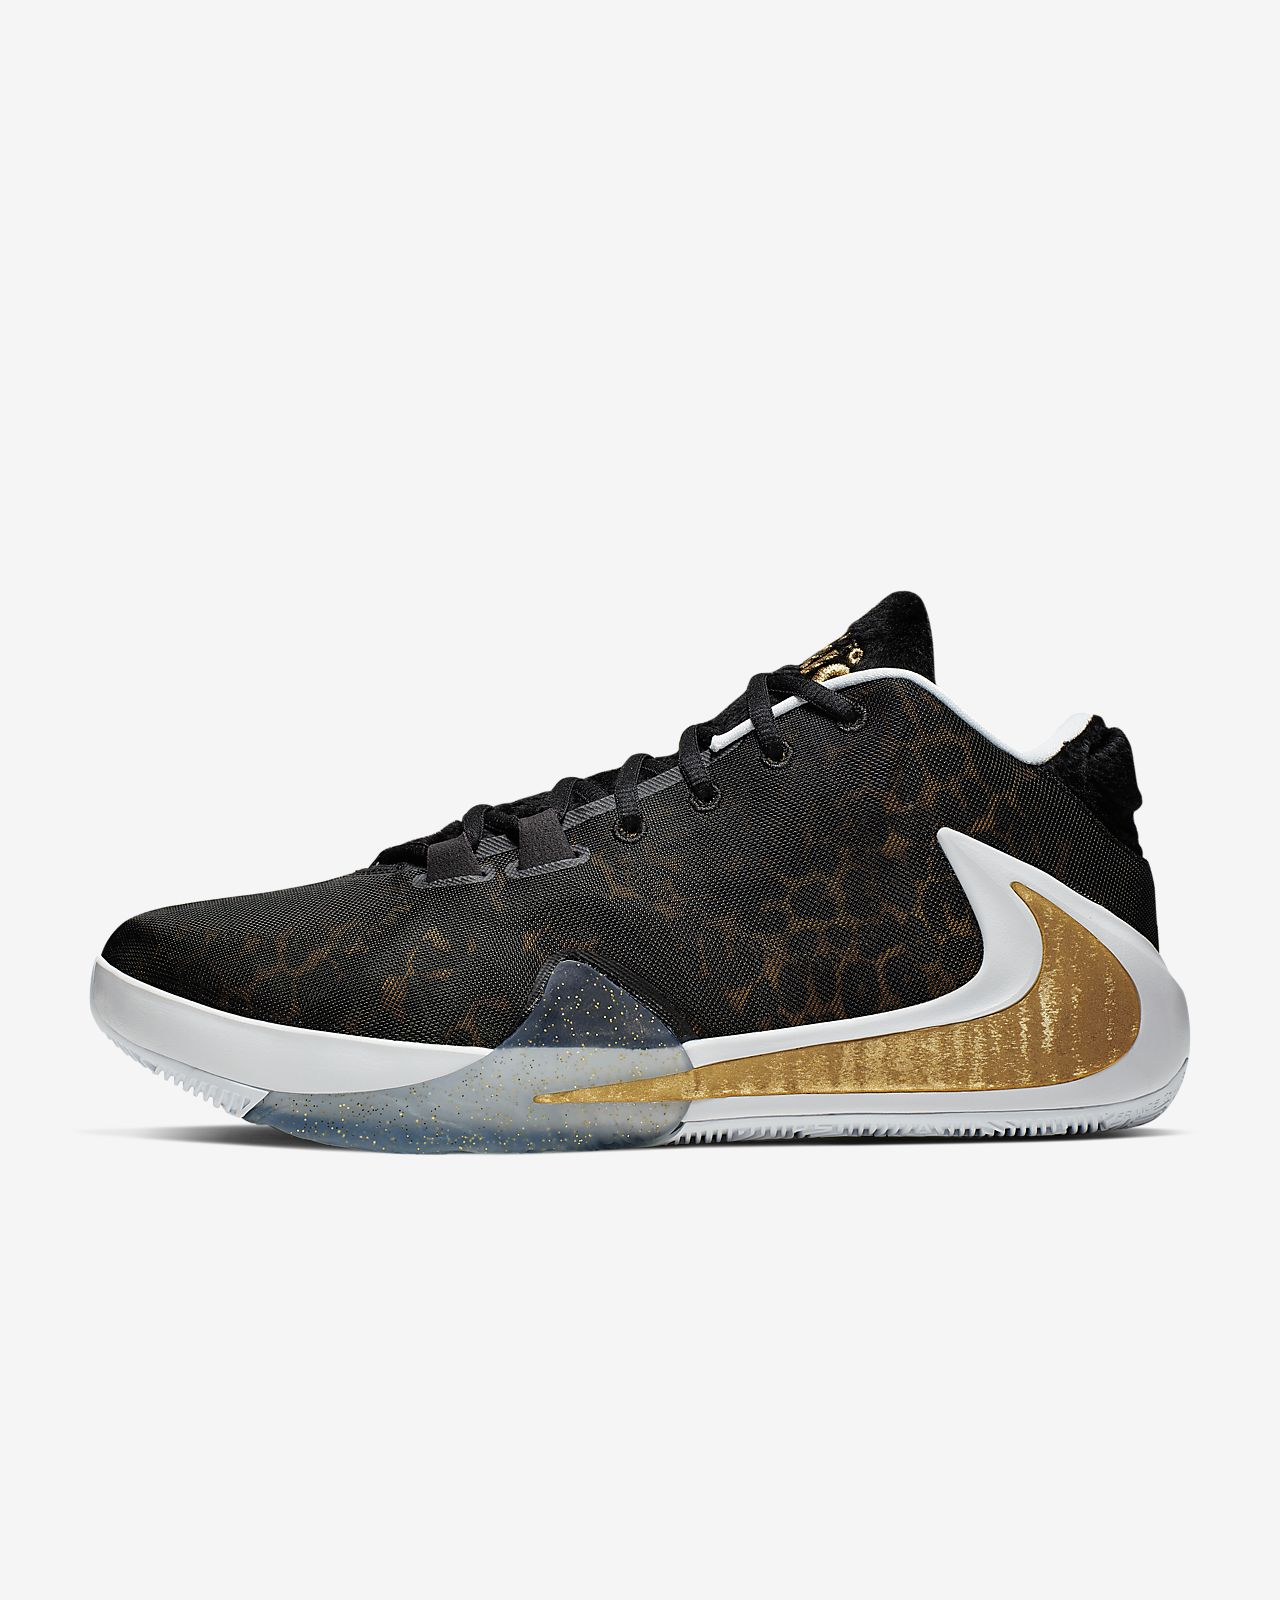 Chaussure de basketball Zoom Freak 1 « Coming to America »